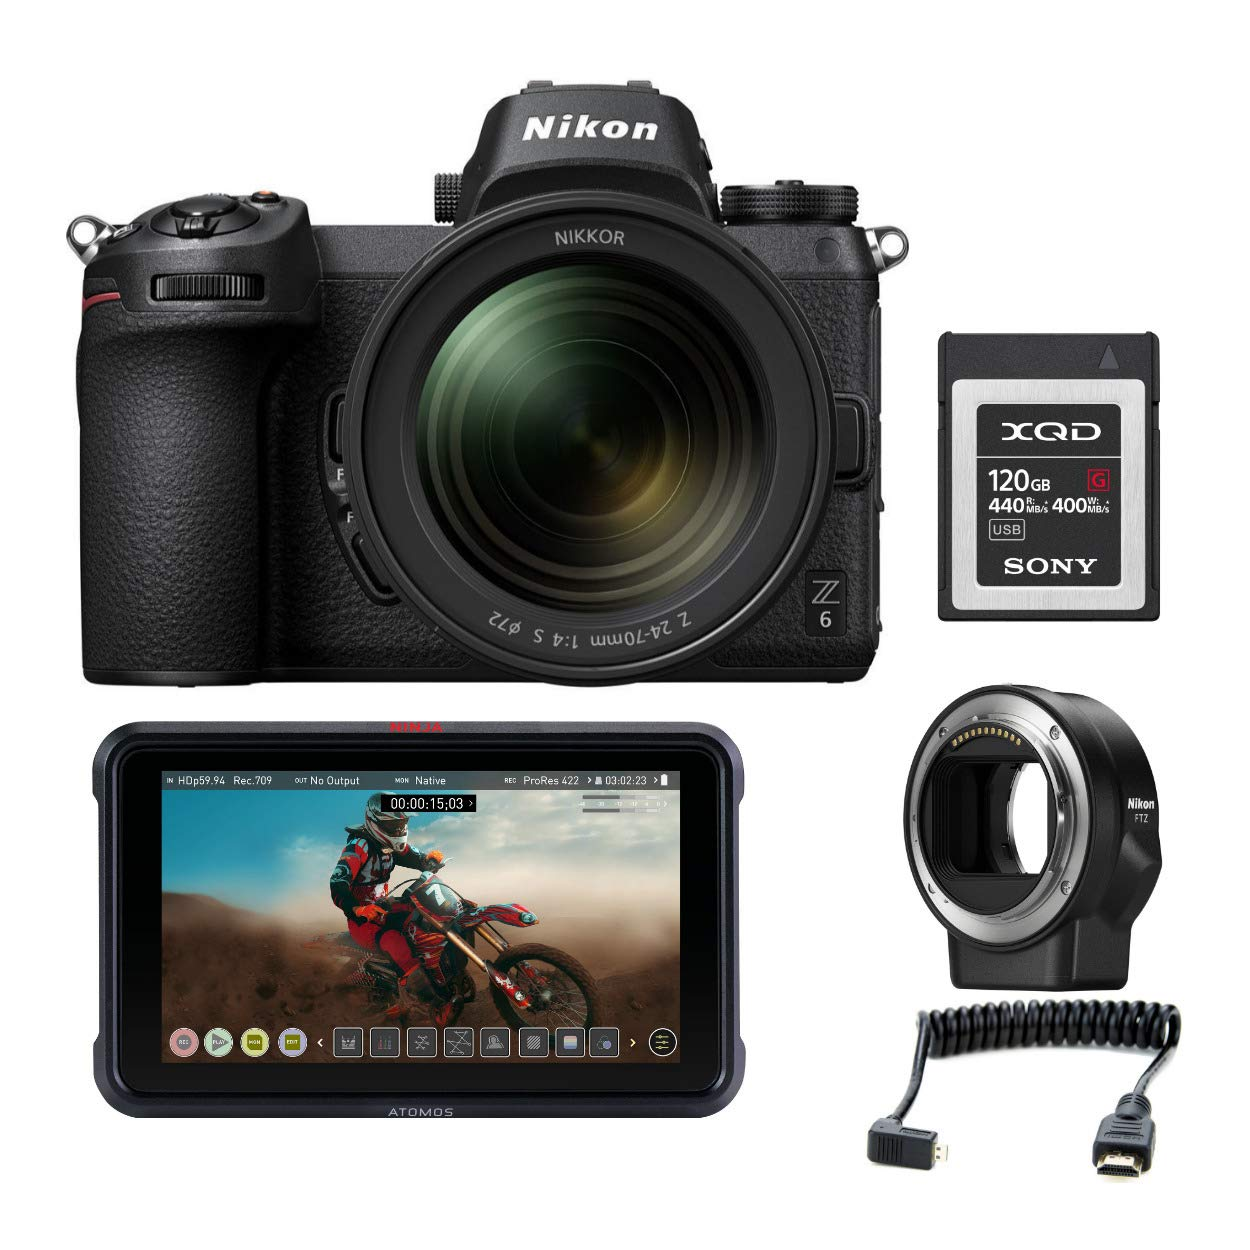 Amazon.com : Nikon Z6 Mirrorless Digital Camera with 24-70mm ...